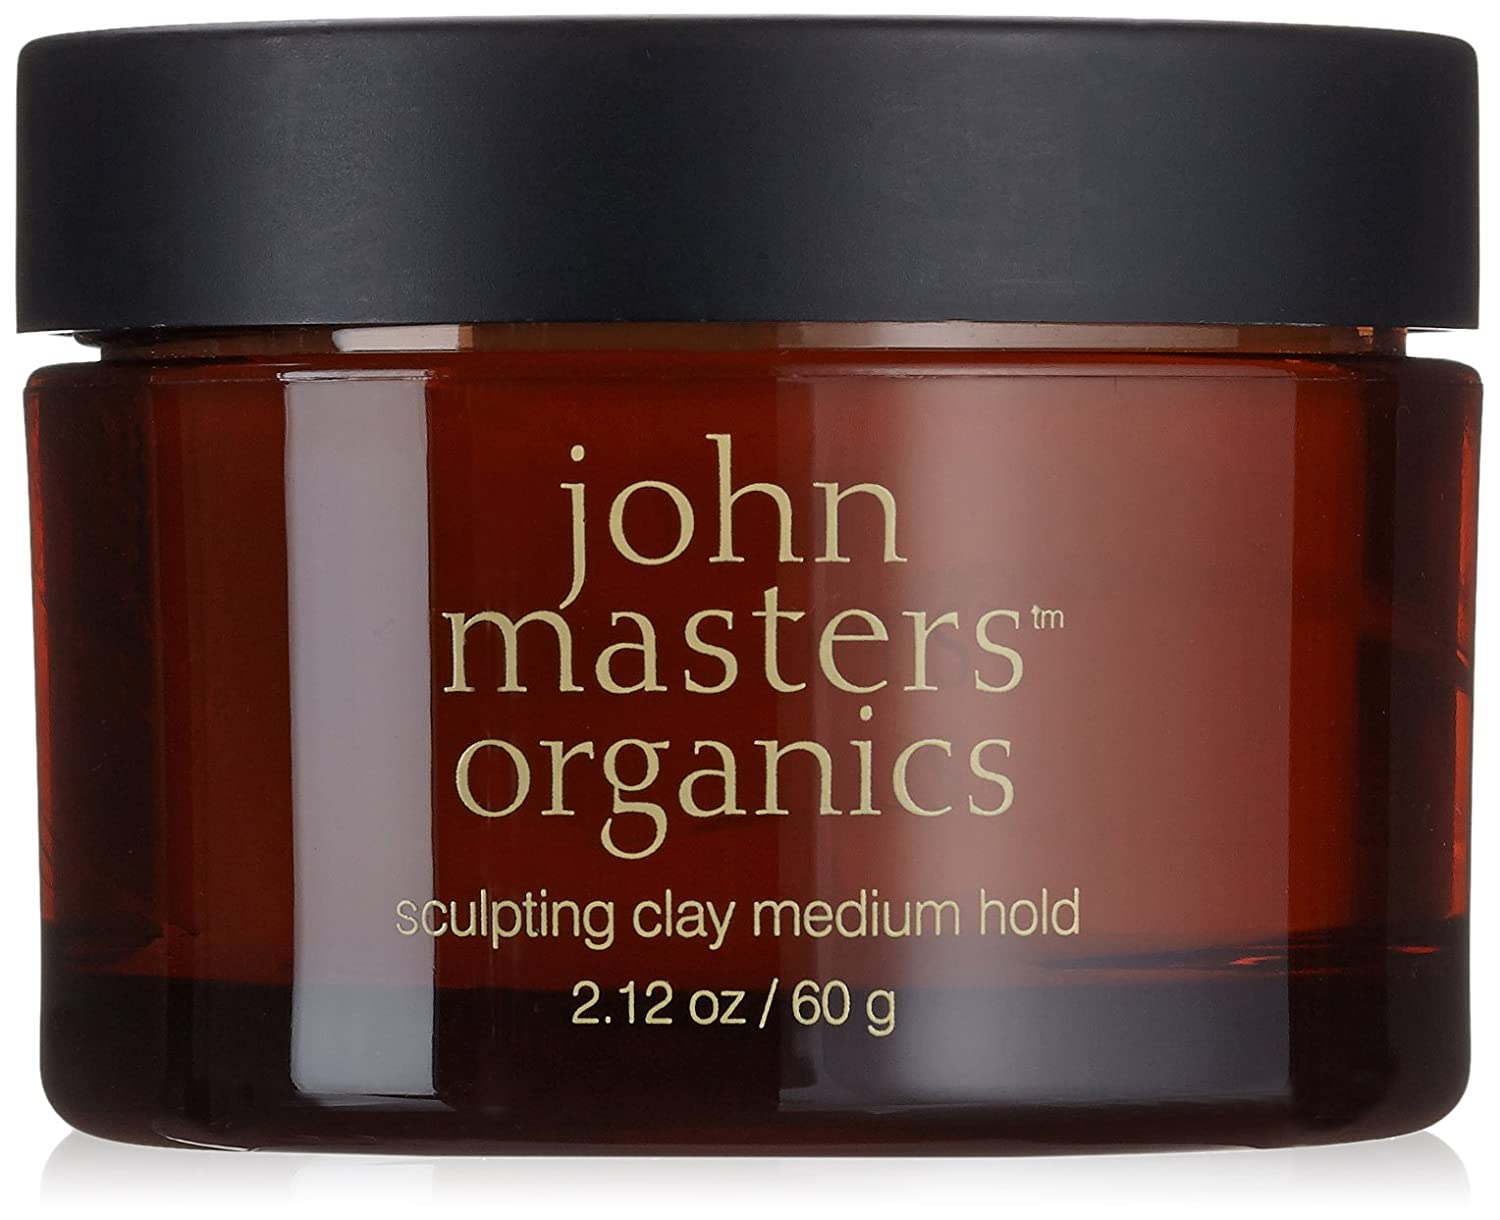 John Masters Organics Sculpting Clay Medium Hold 2.12 oz CLM